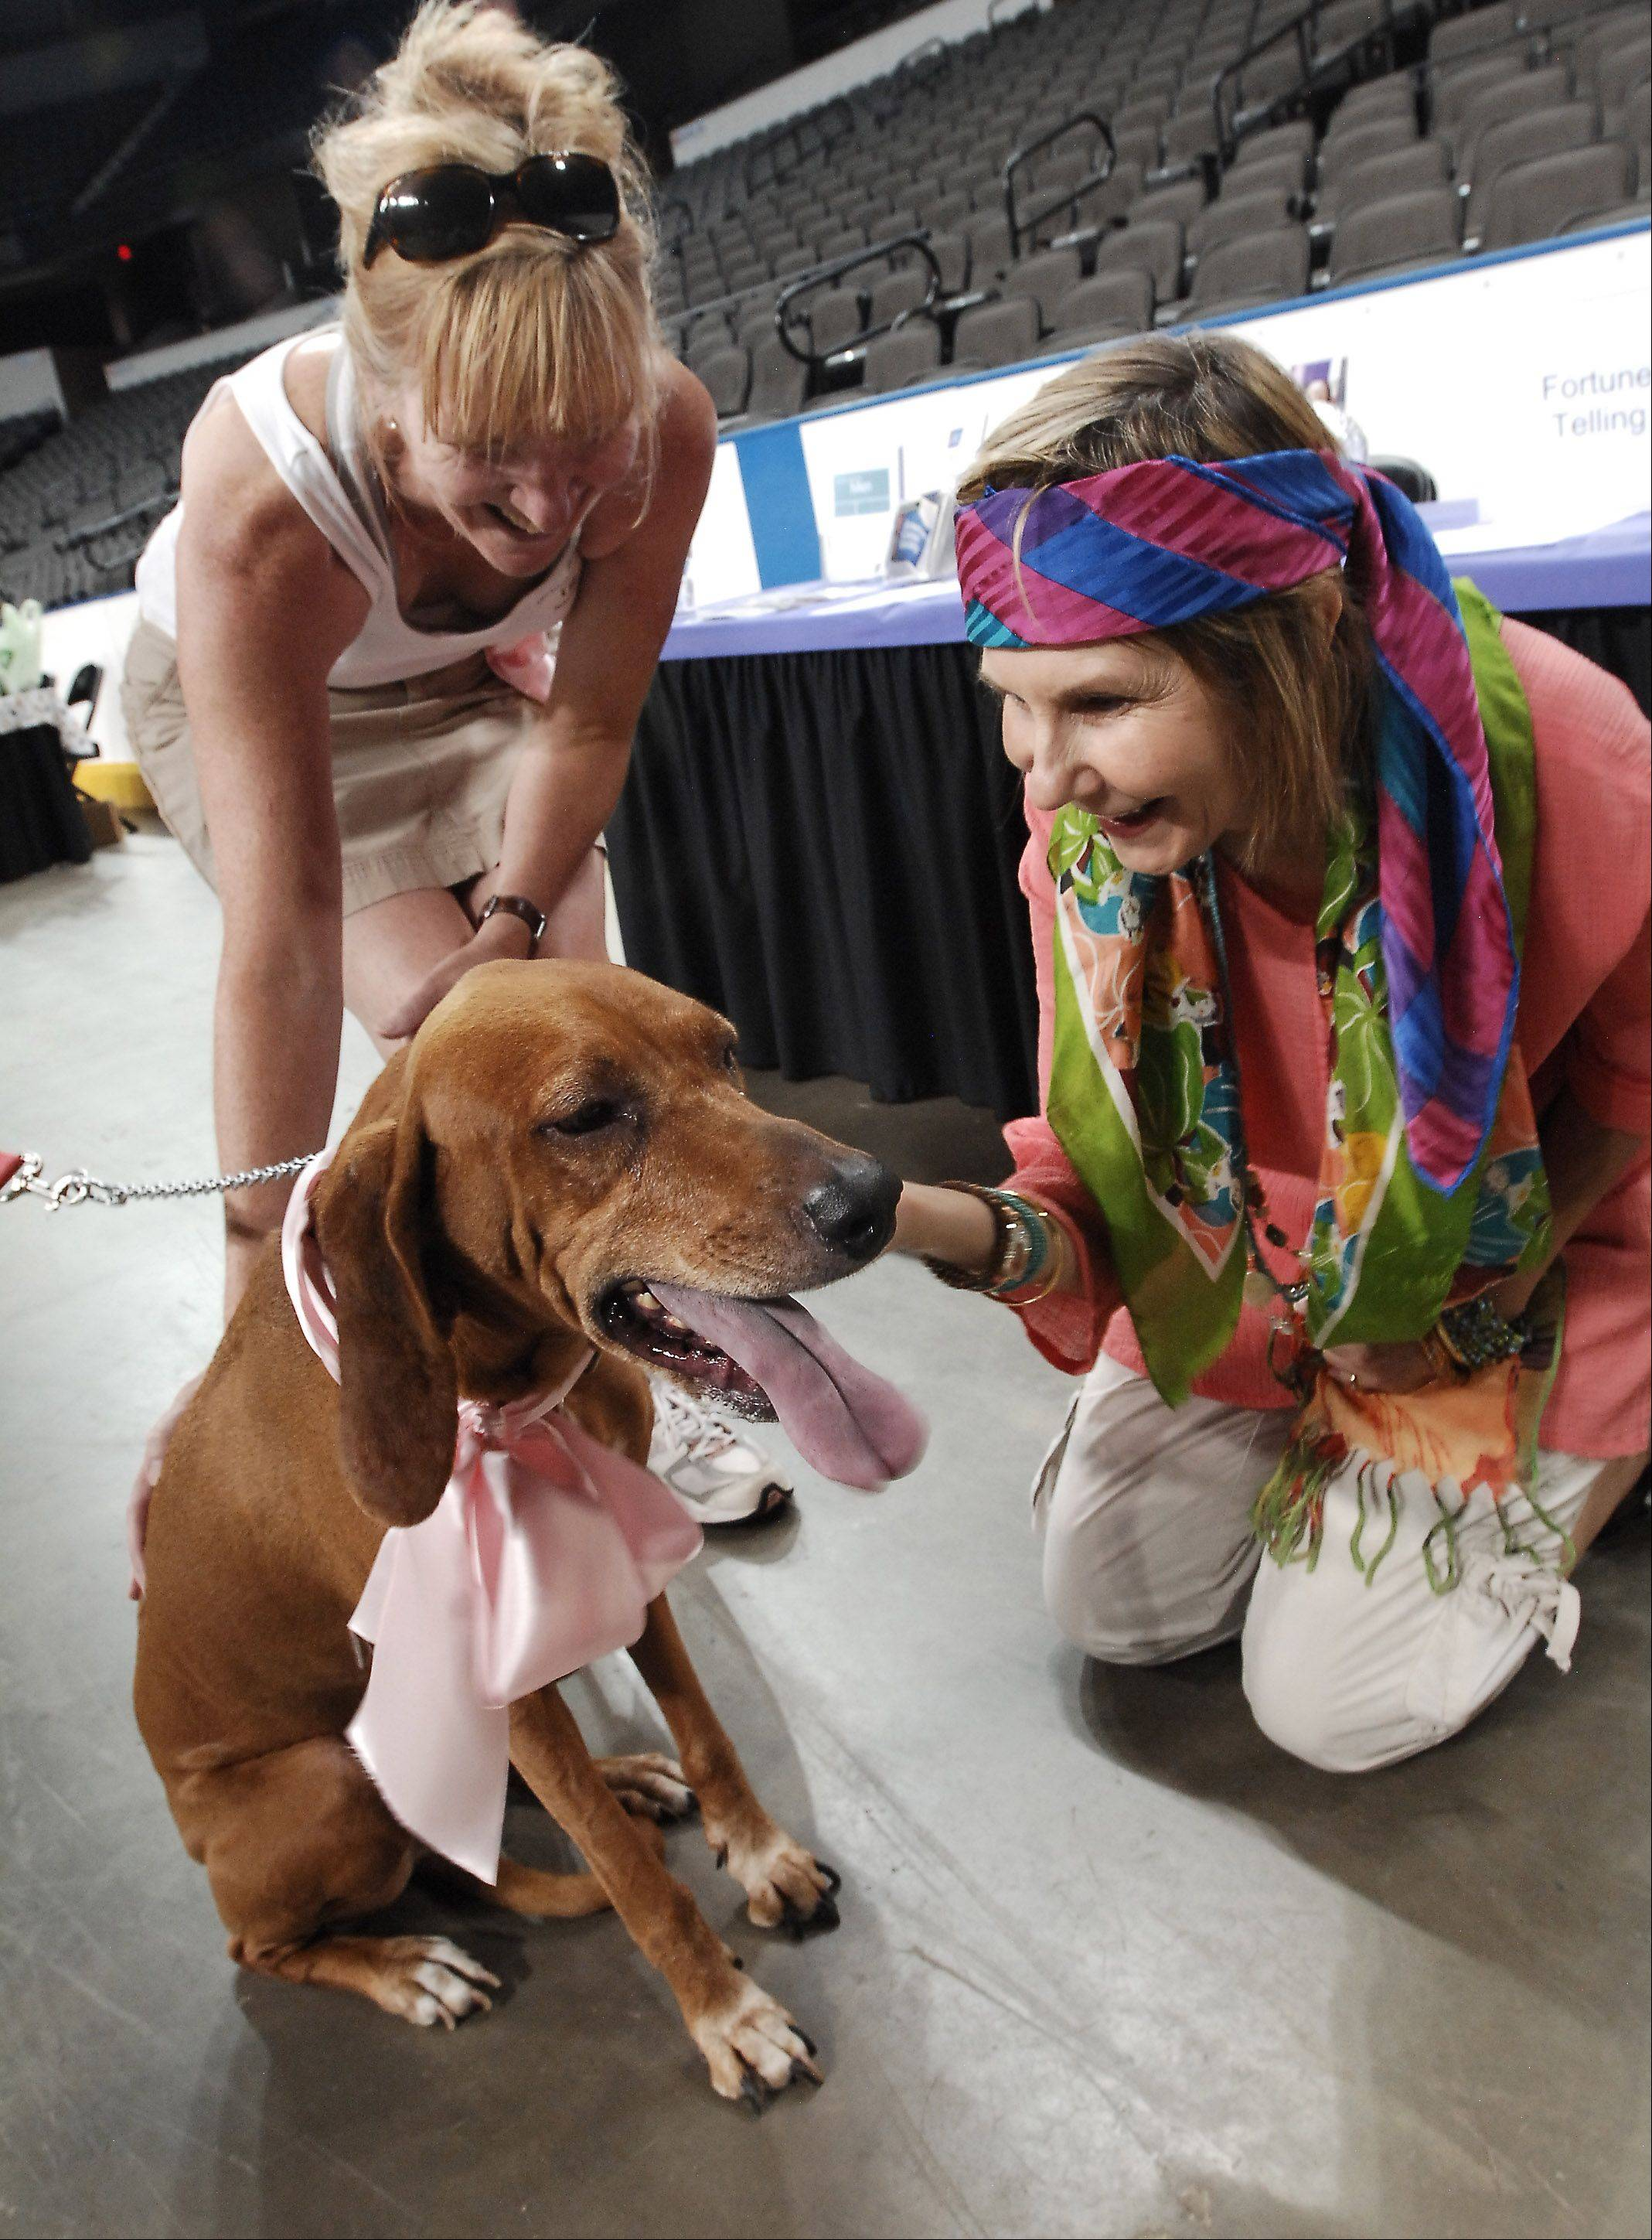 With owner Susan Esbrook of Arlington Heights looking on, redbone coon hound Tally gets her fortune told by Madame Mookus, alias Char Padovani, right, at a previous edition of the Bark for Live event.